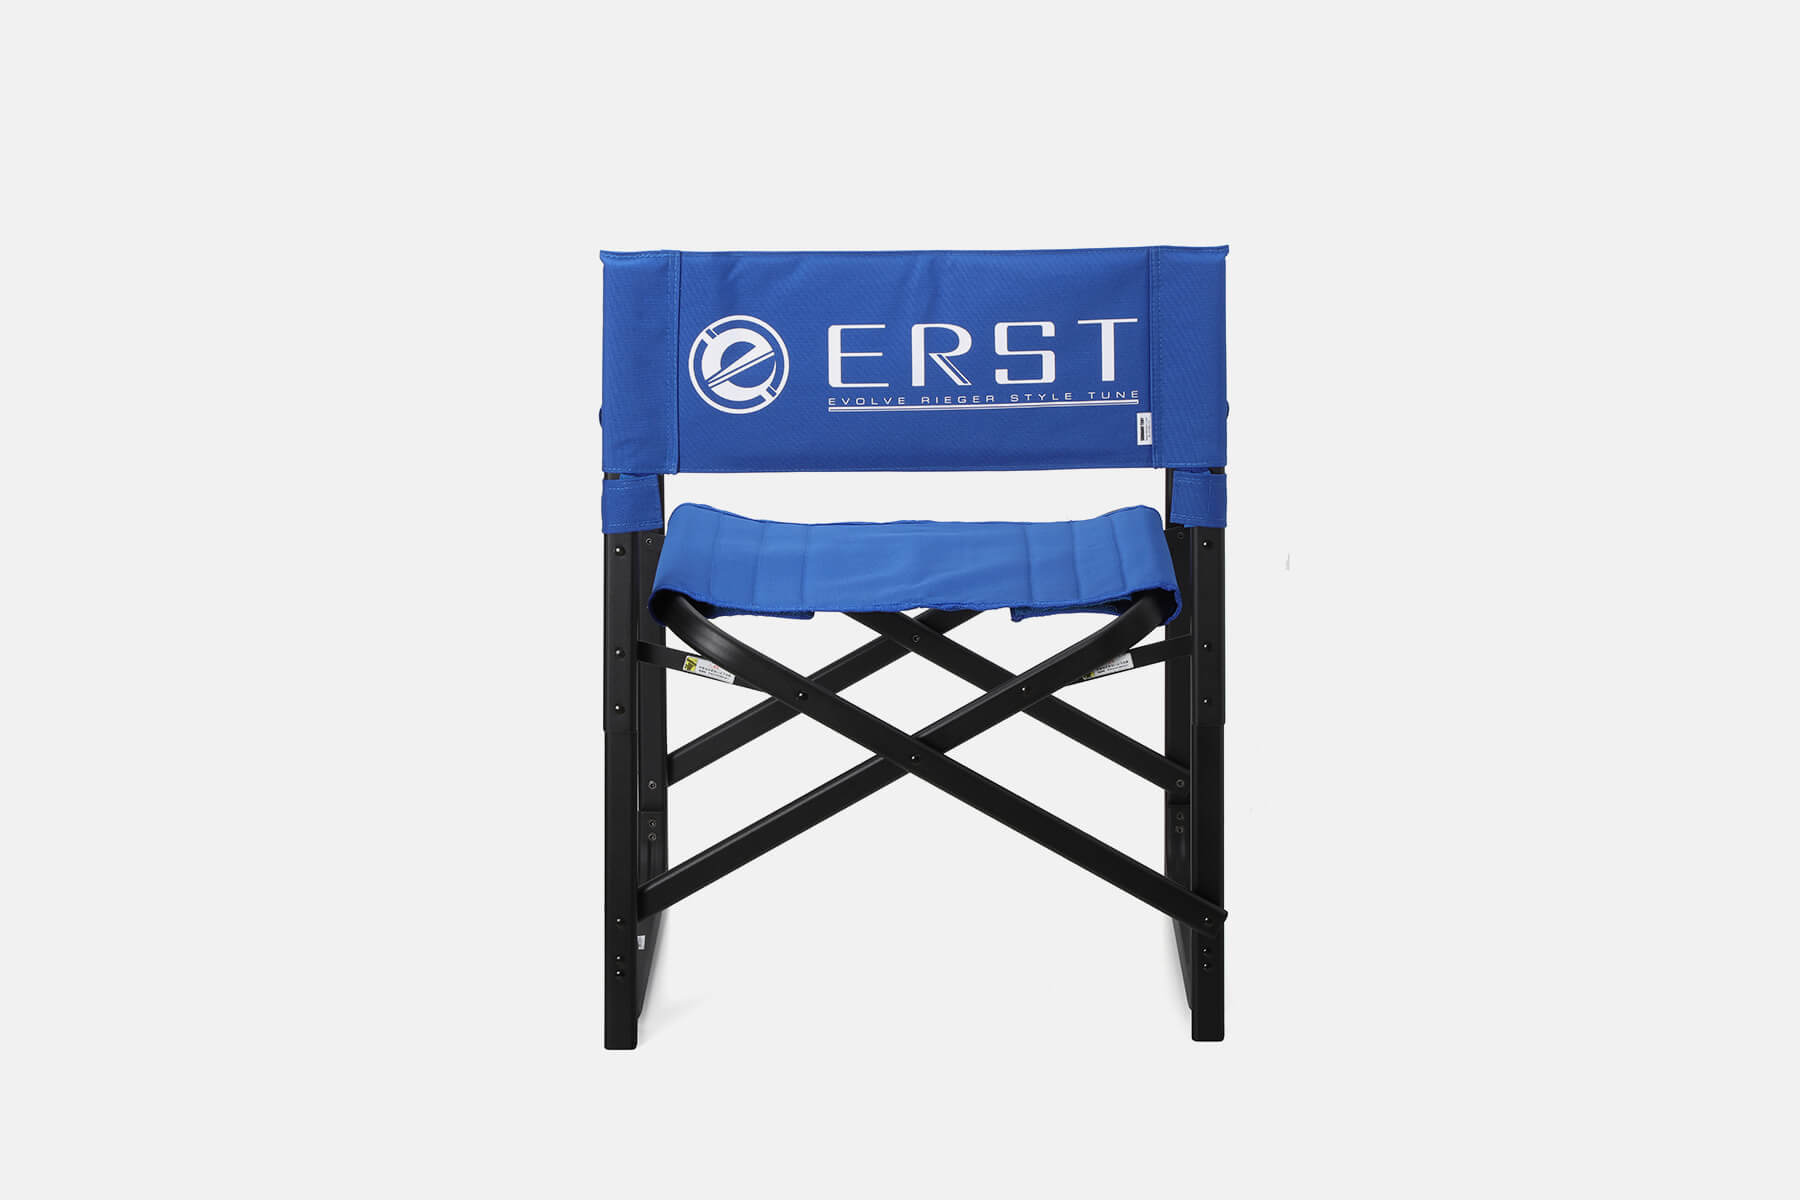 ERST Director-Chair